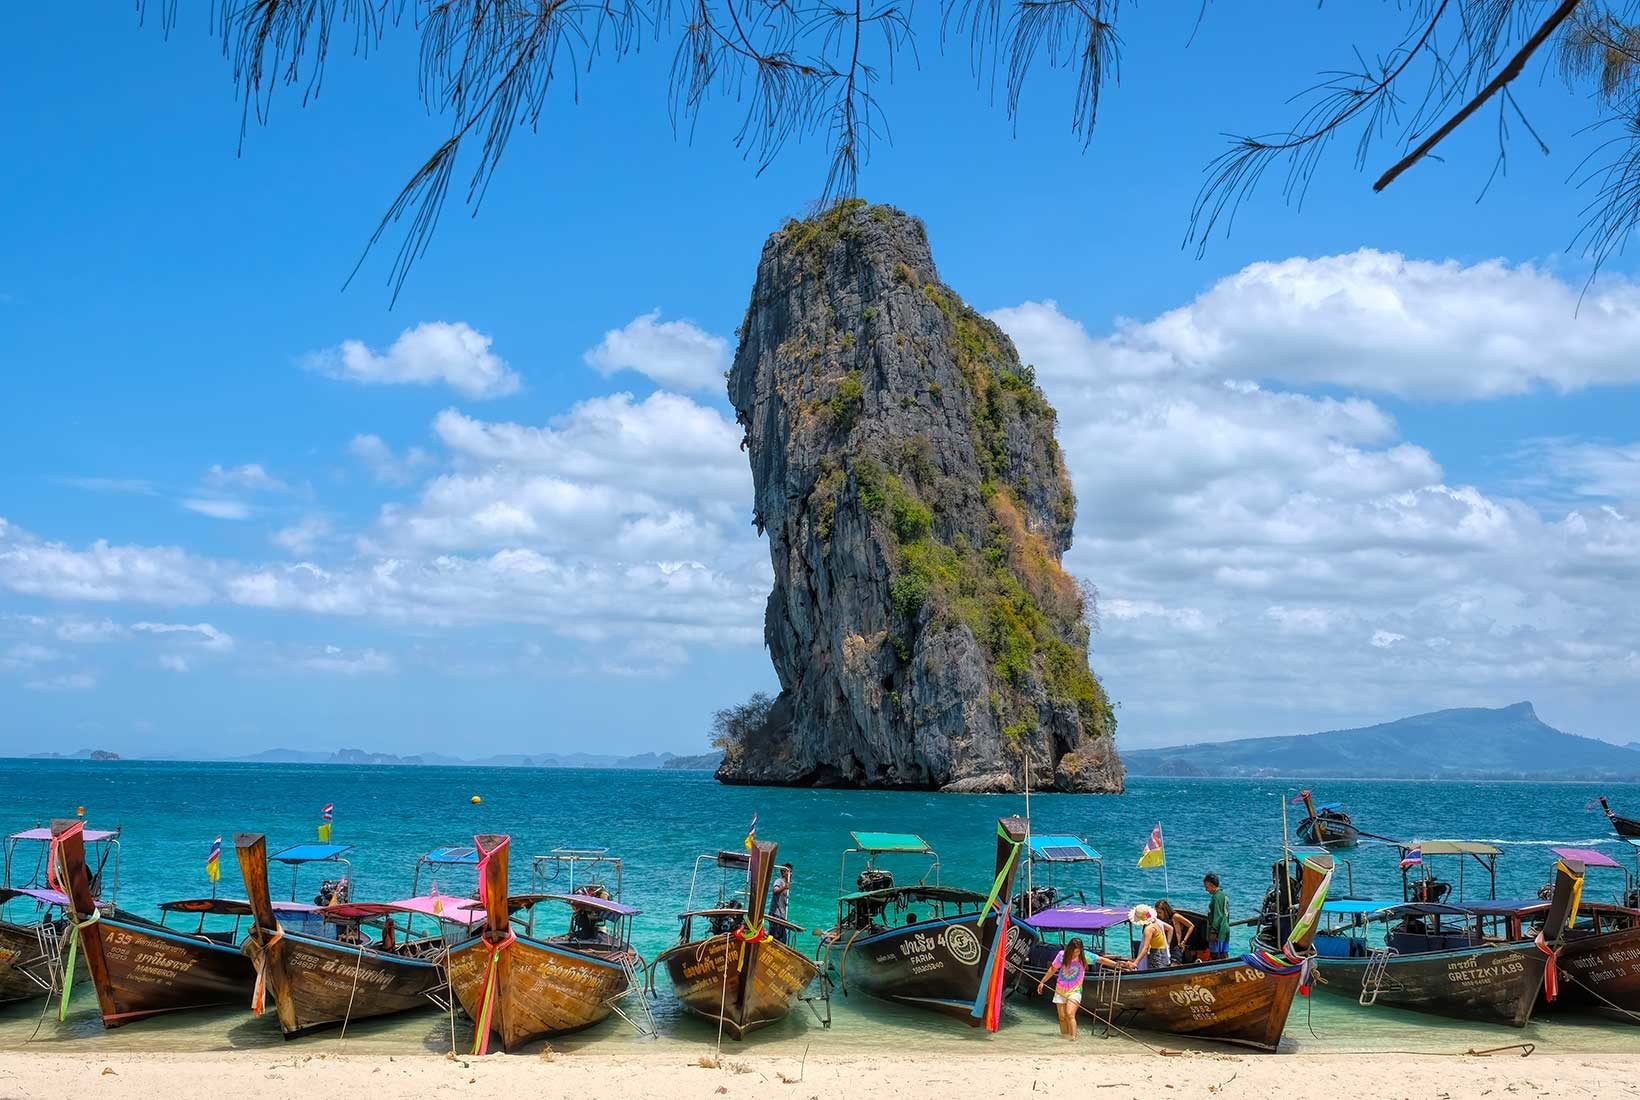 Colorful line of longtail boats on the beach at Koh Poda